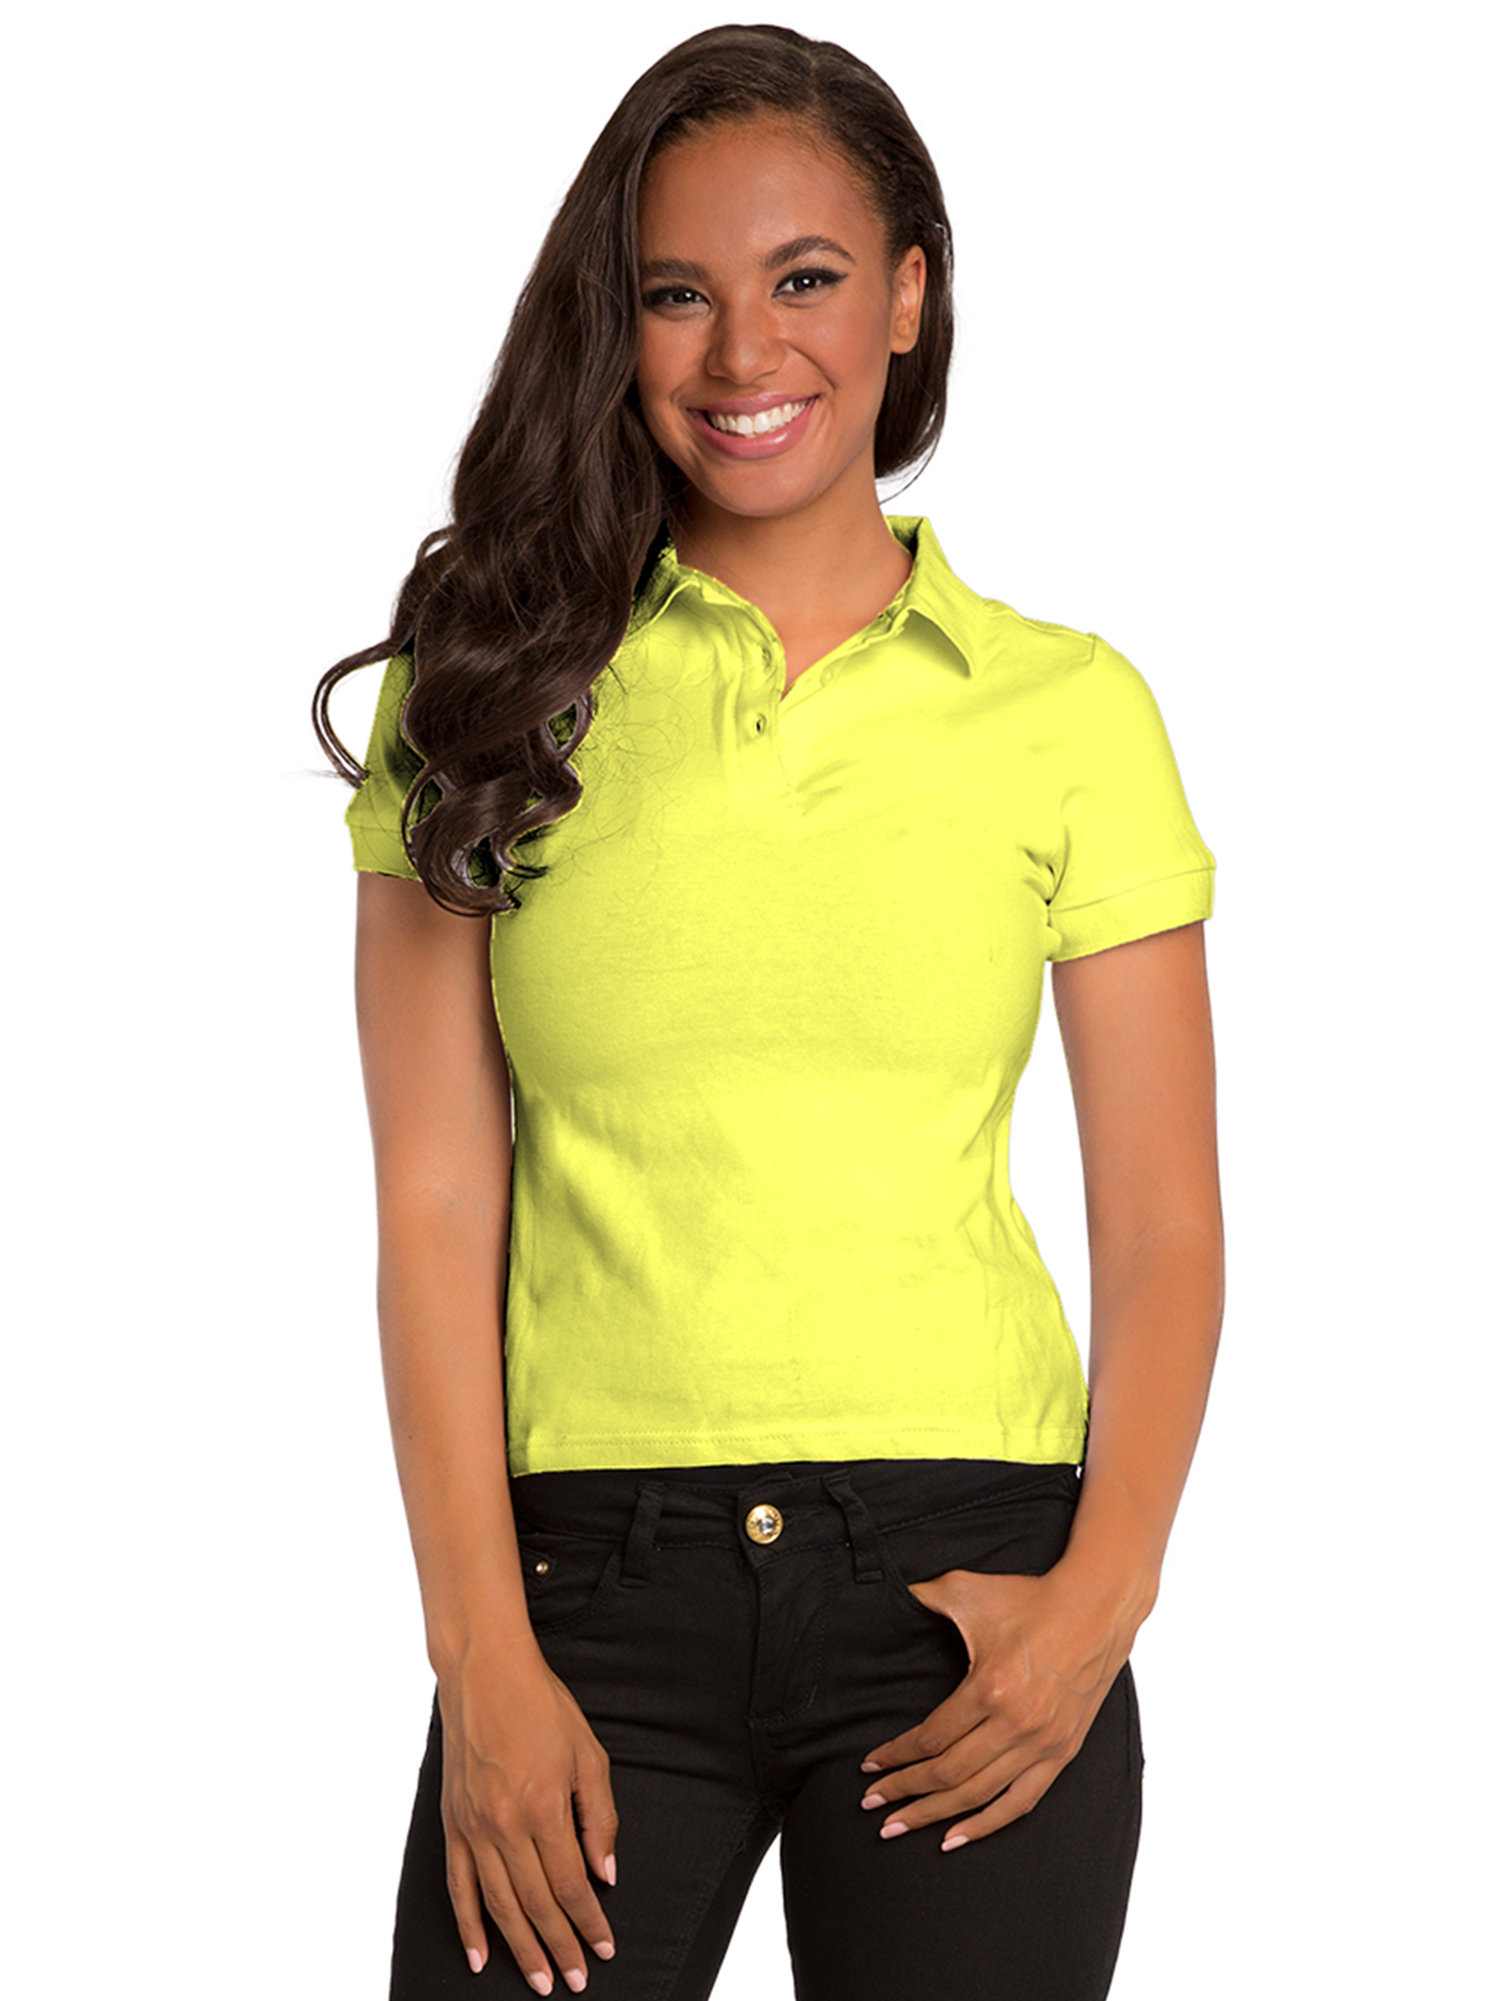 Sweetvibes Sweet Vibes Women Green Stretch Pique Polo Shirt Short